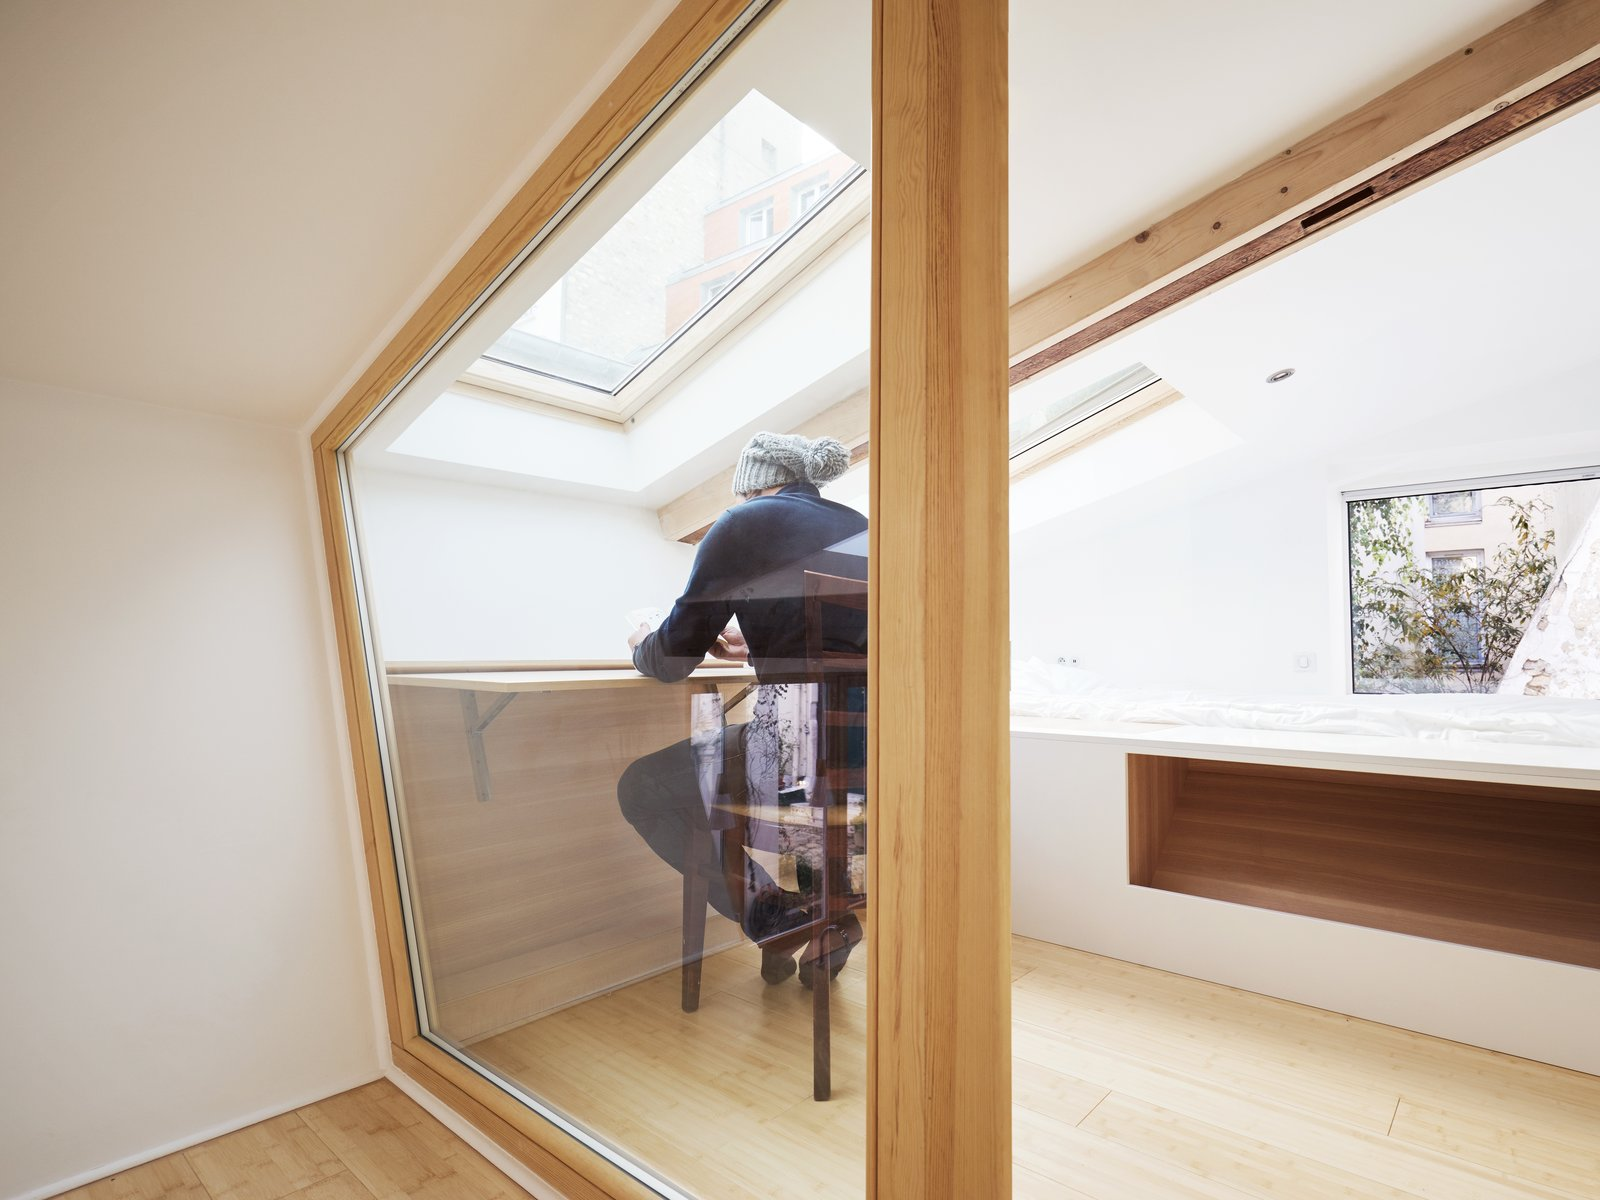 A skylight illuminates the retractable desk in the lofted workspace.